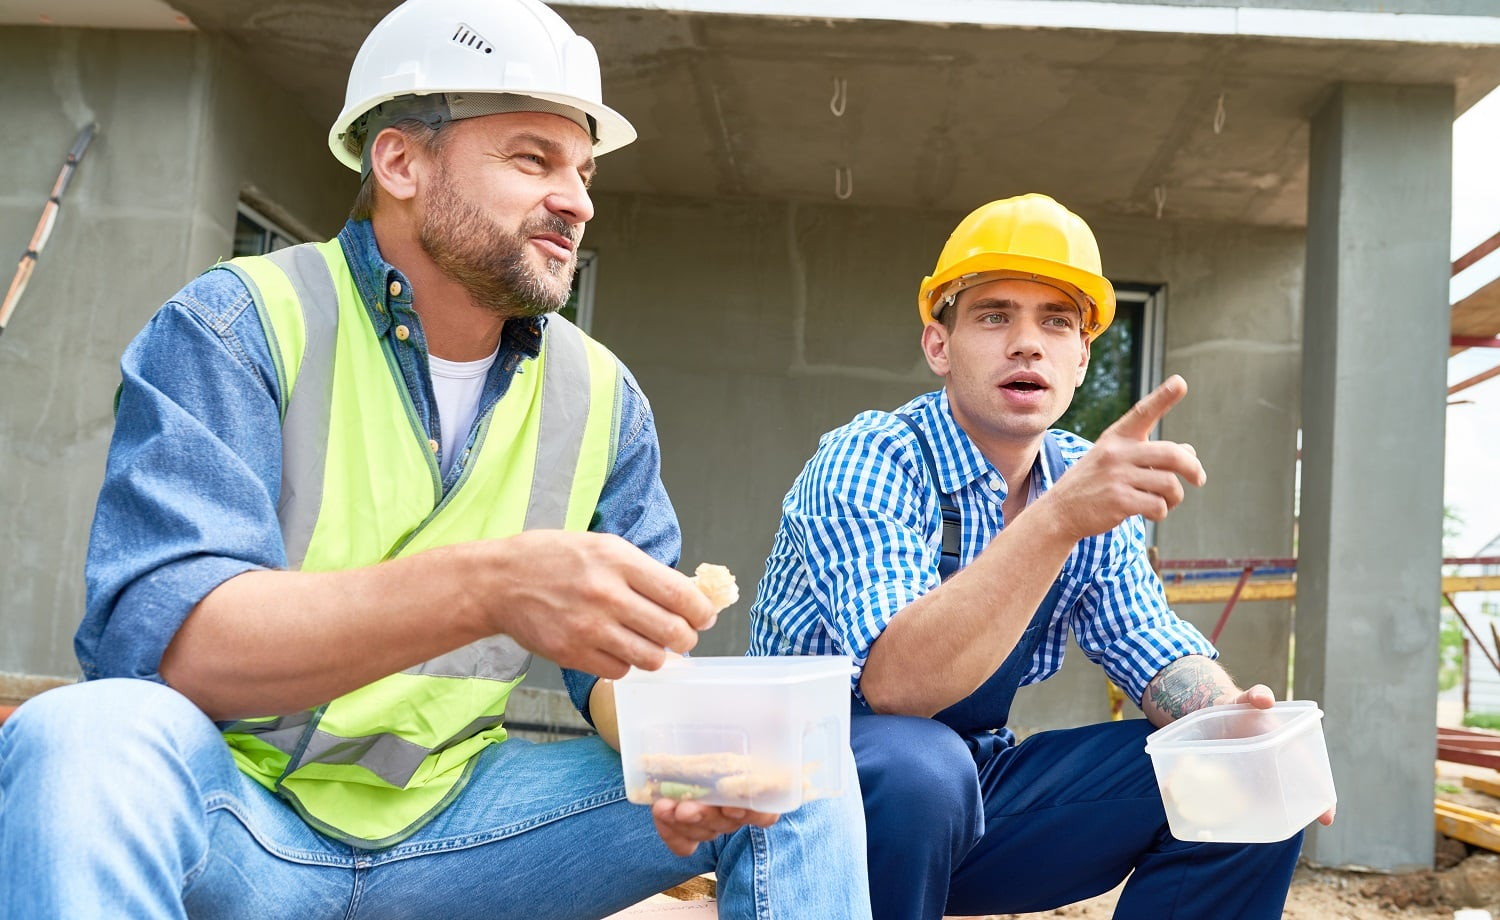 Portrait of two construction workers taking break on site eating lunch out of plastic containers outdoors